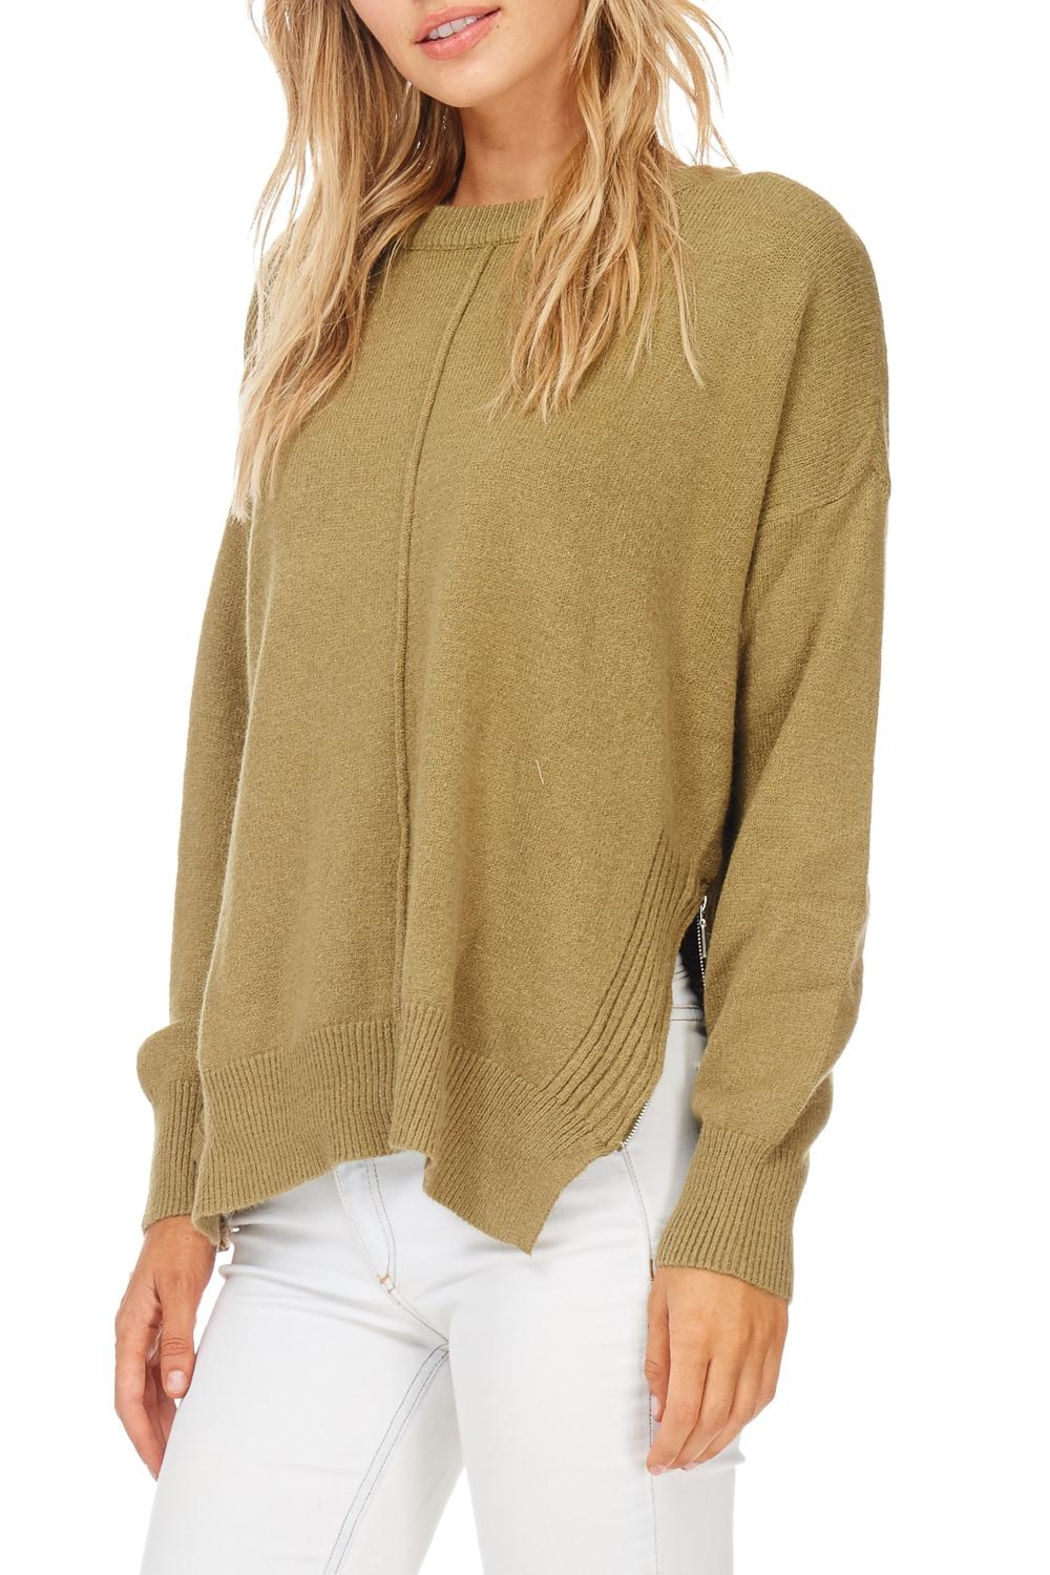 Hem & Thread Olive Zip Sweater - Front Cropped Image